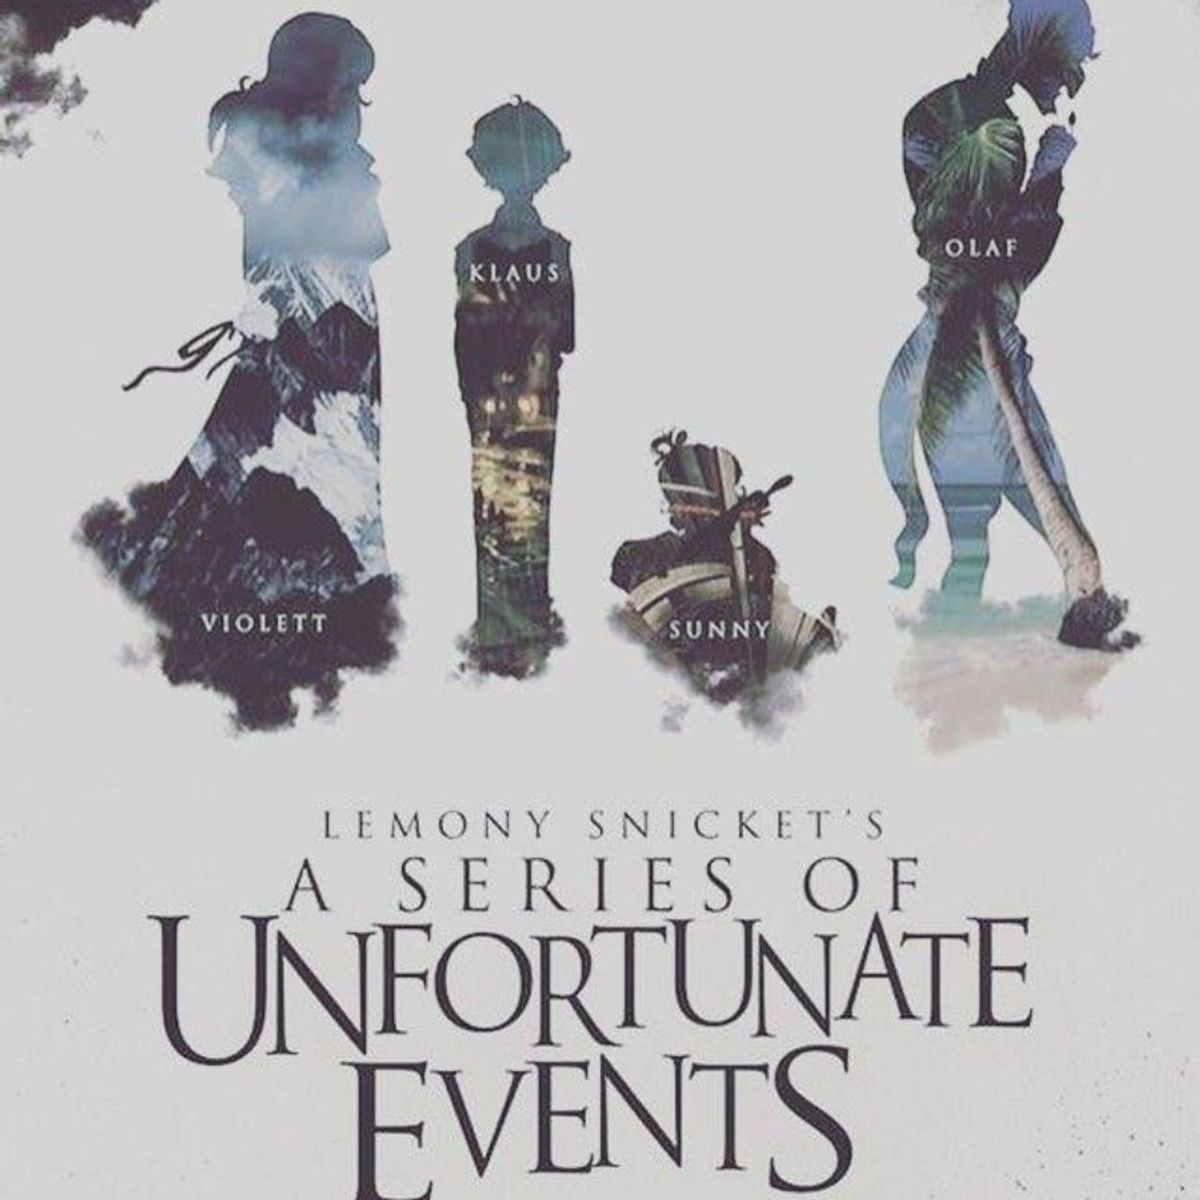 Will Netflix's Reputation Deliver With 'A Series Of Unfortunate Events'?